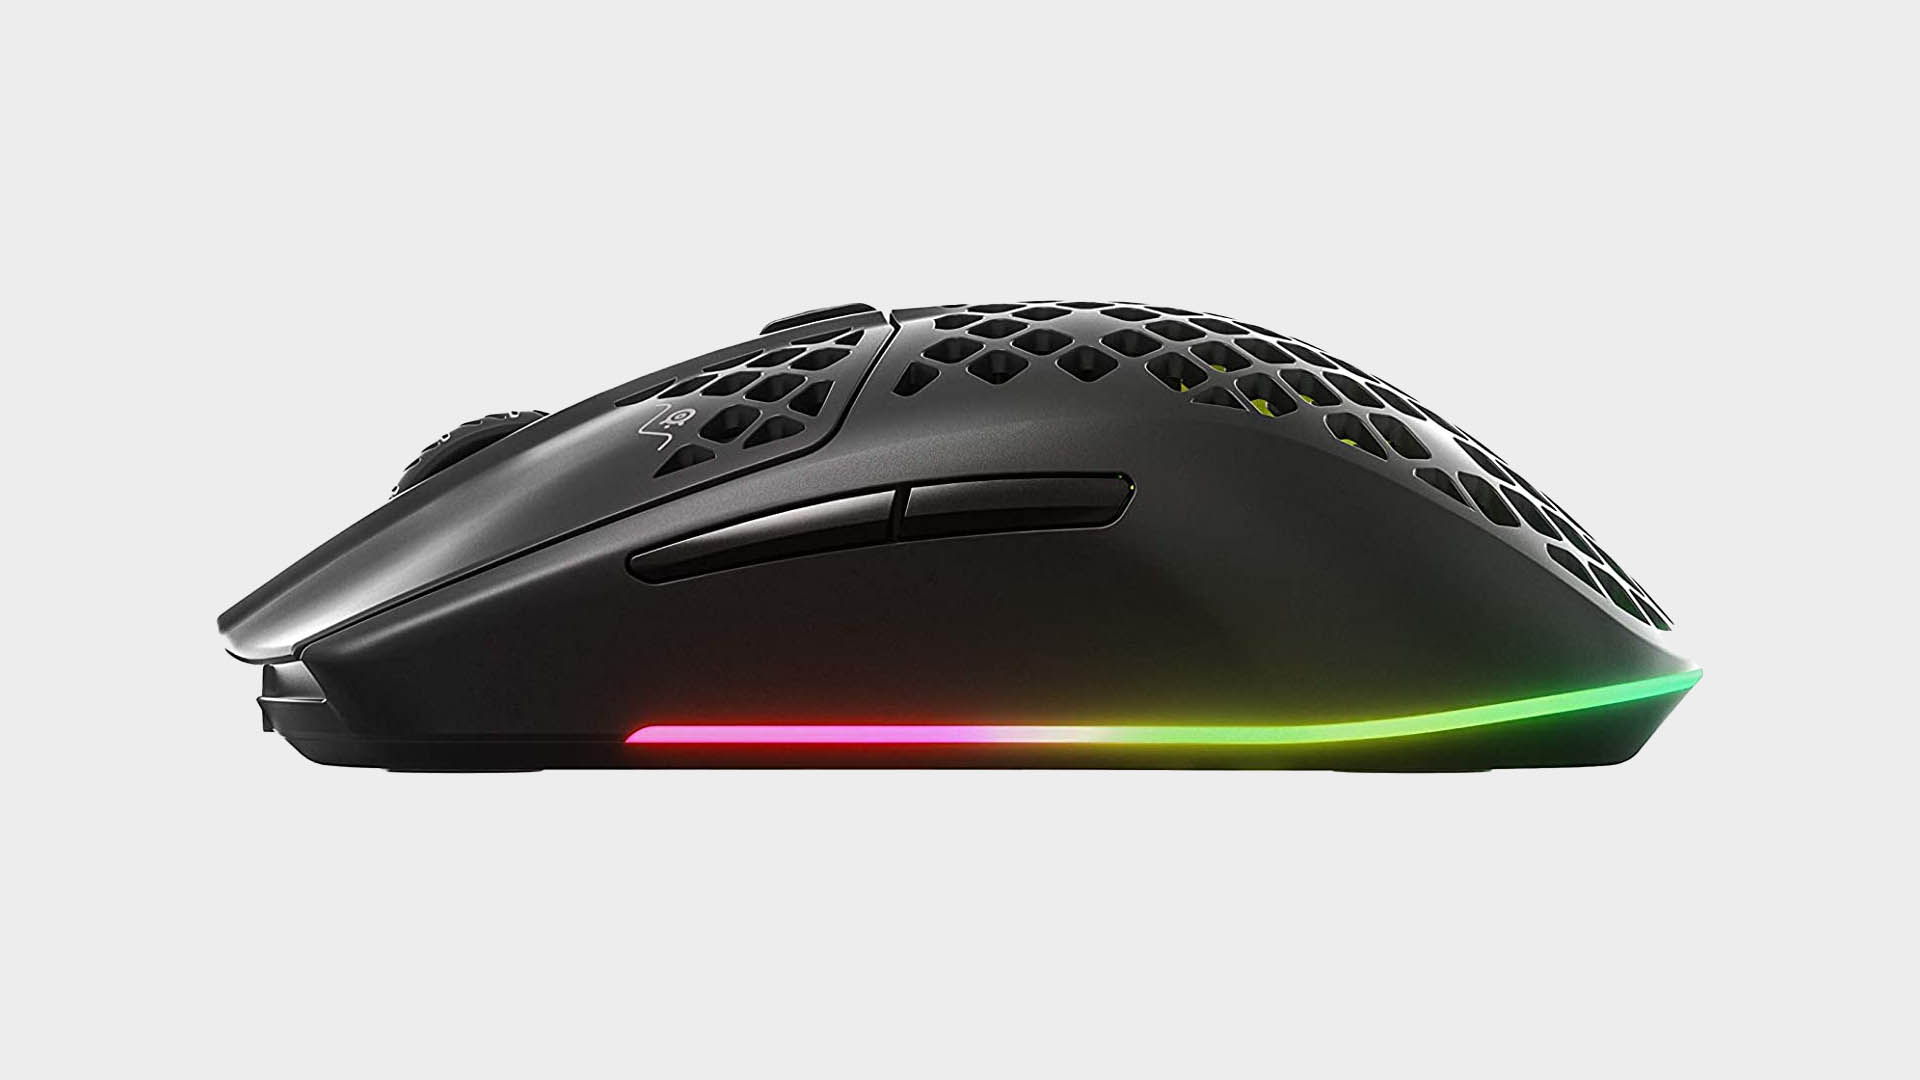 SteelSeries Aerox 3 Wireless gaming mouse from various angles on light grey background